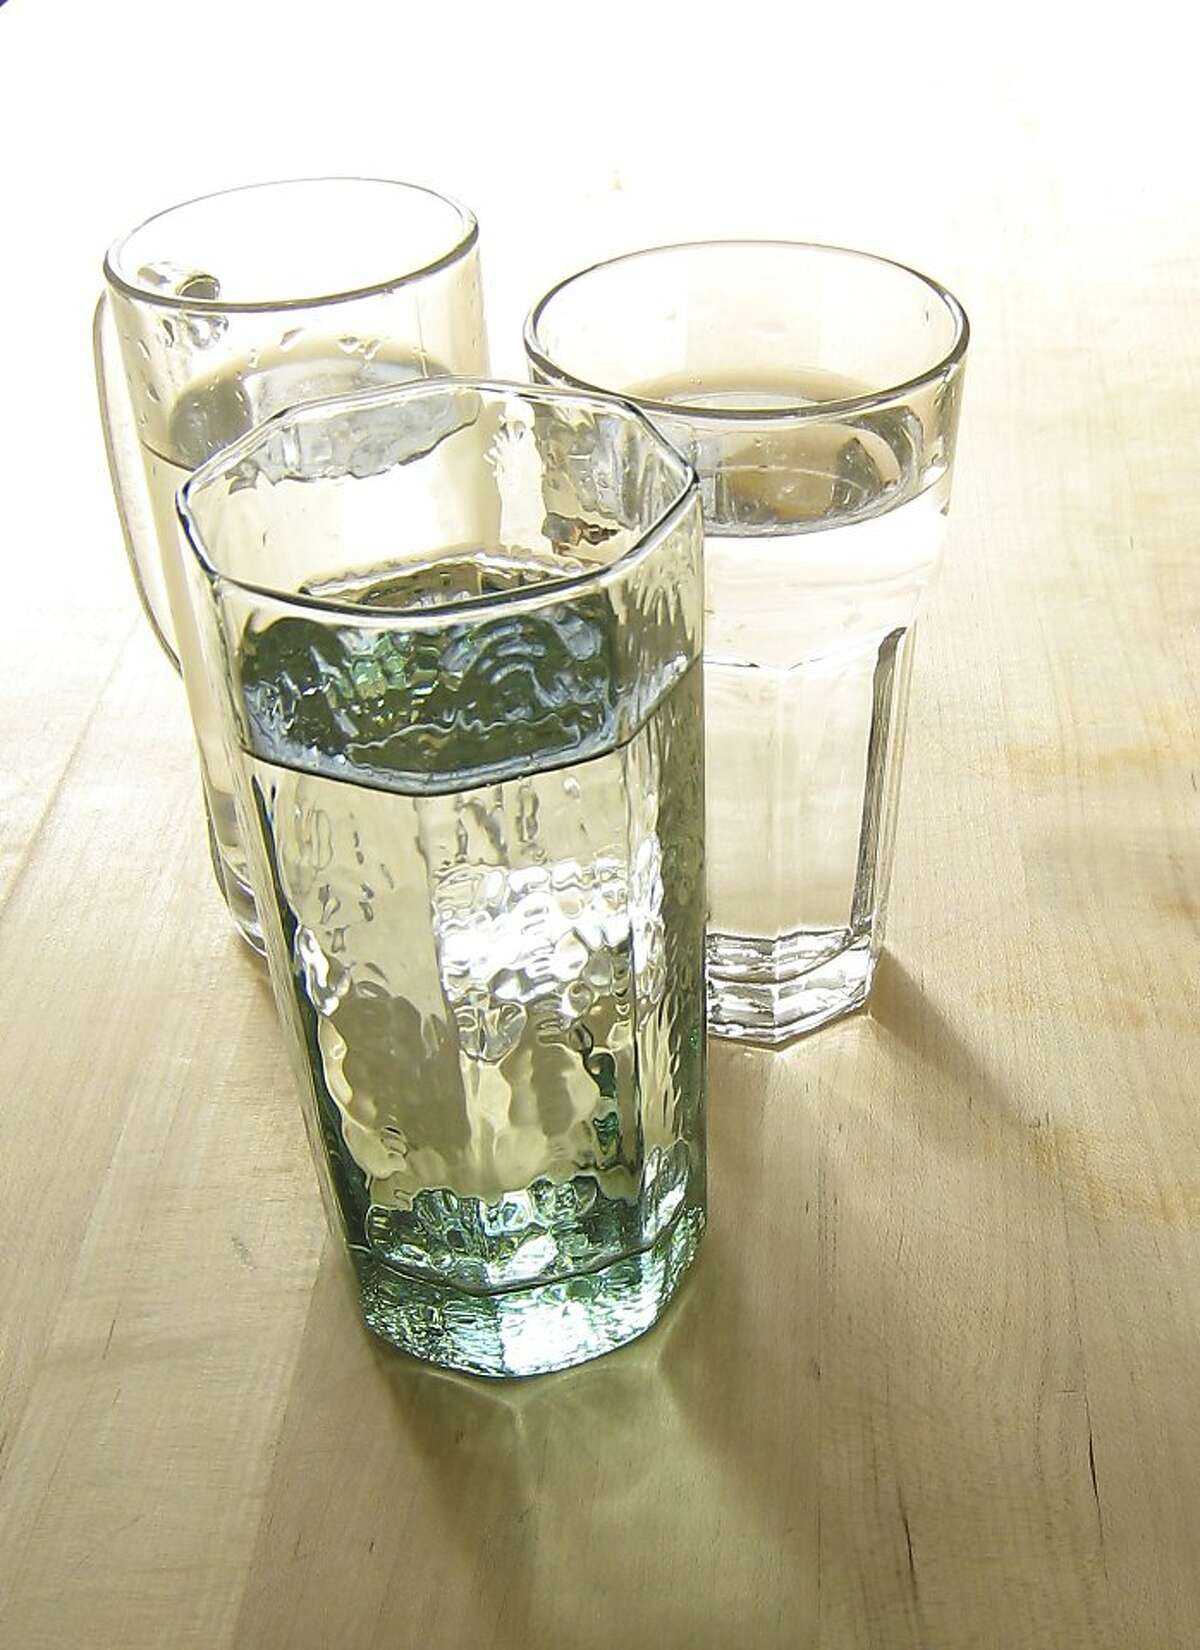 Drinking when thirsty is a good way to ensure the proper amount water consumption.